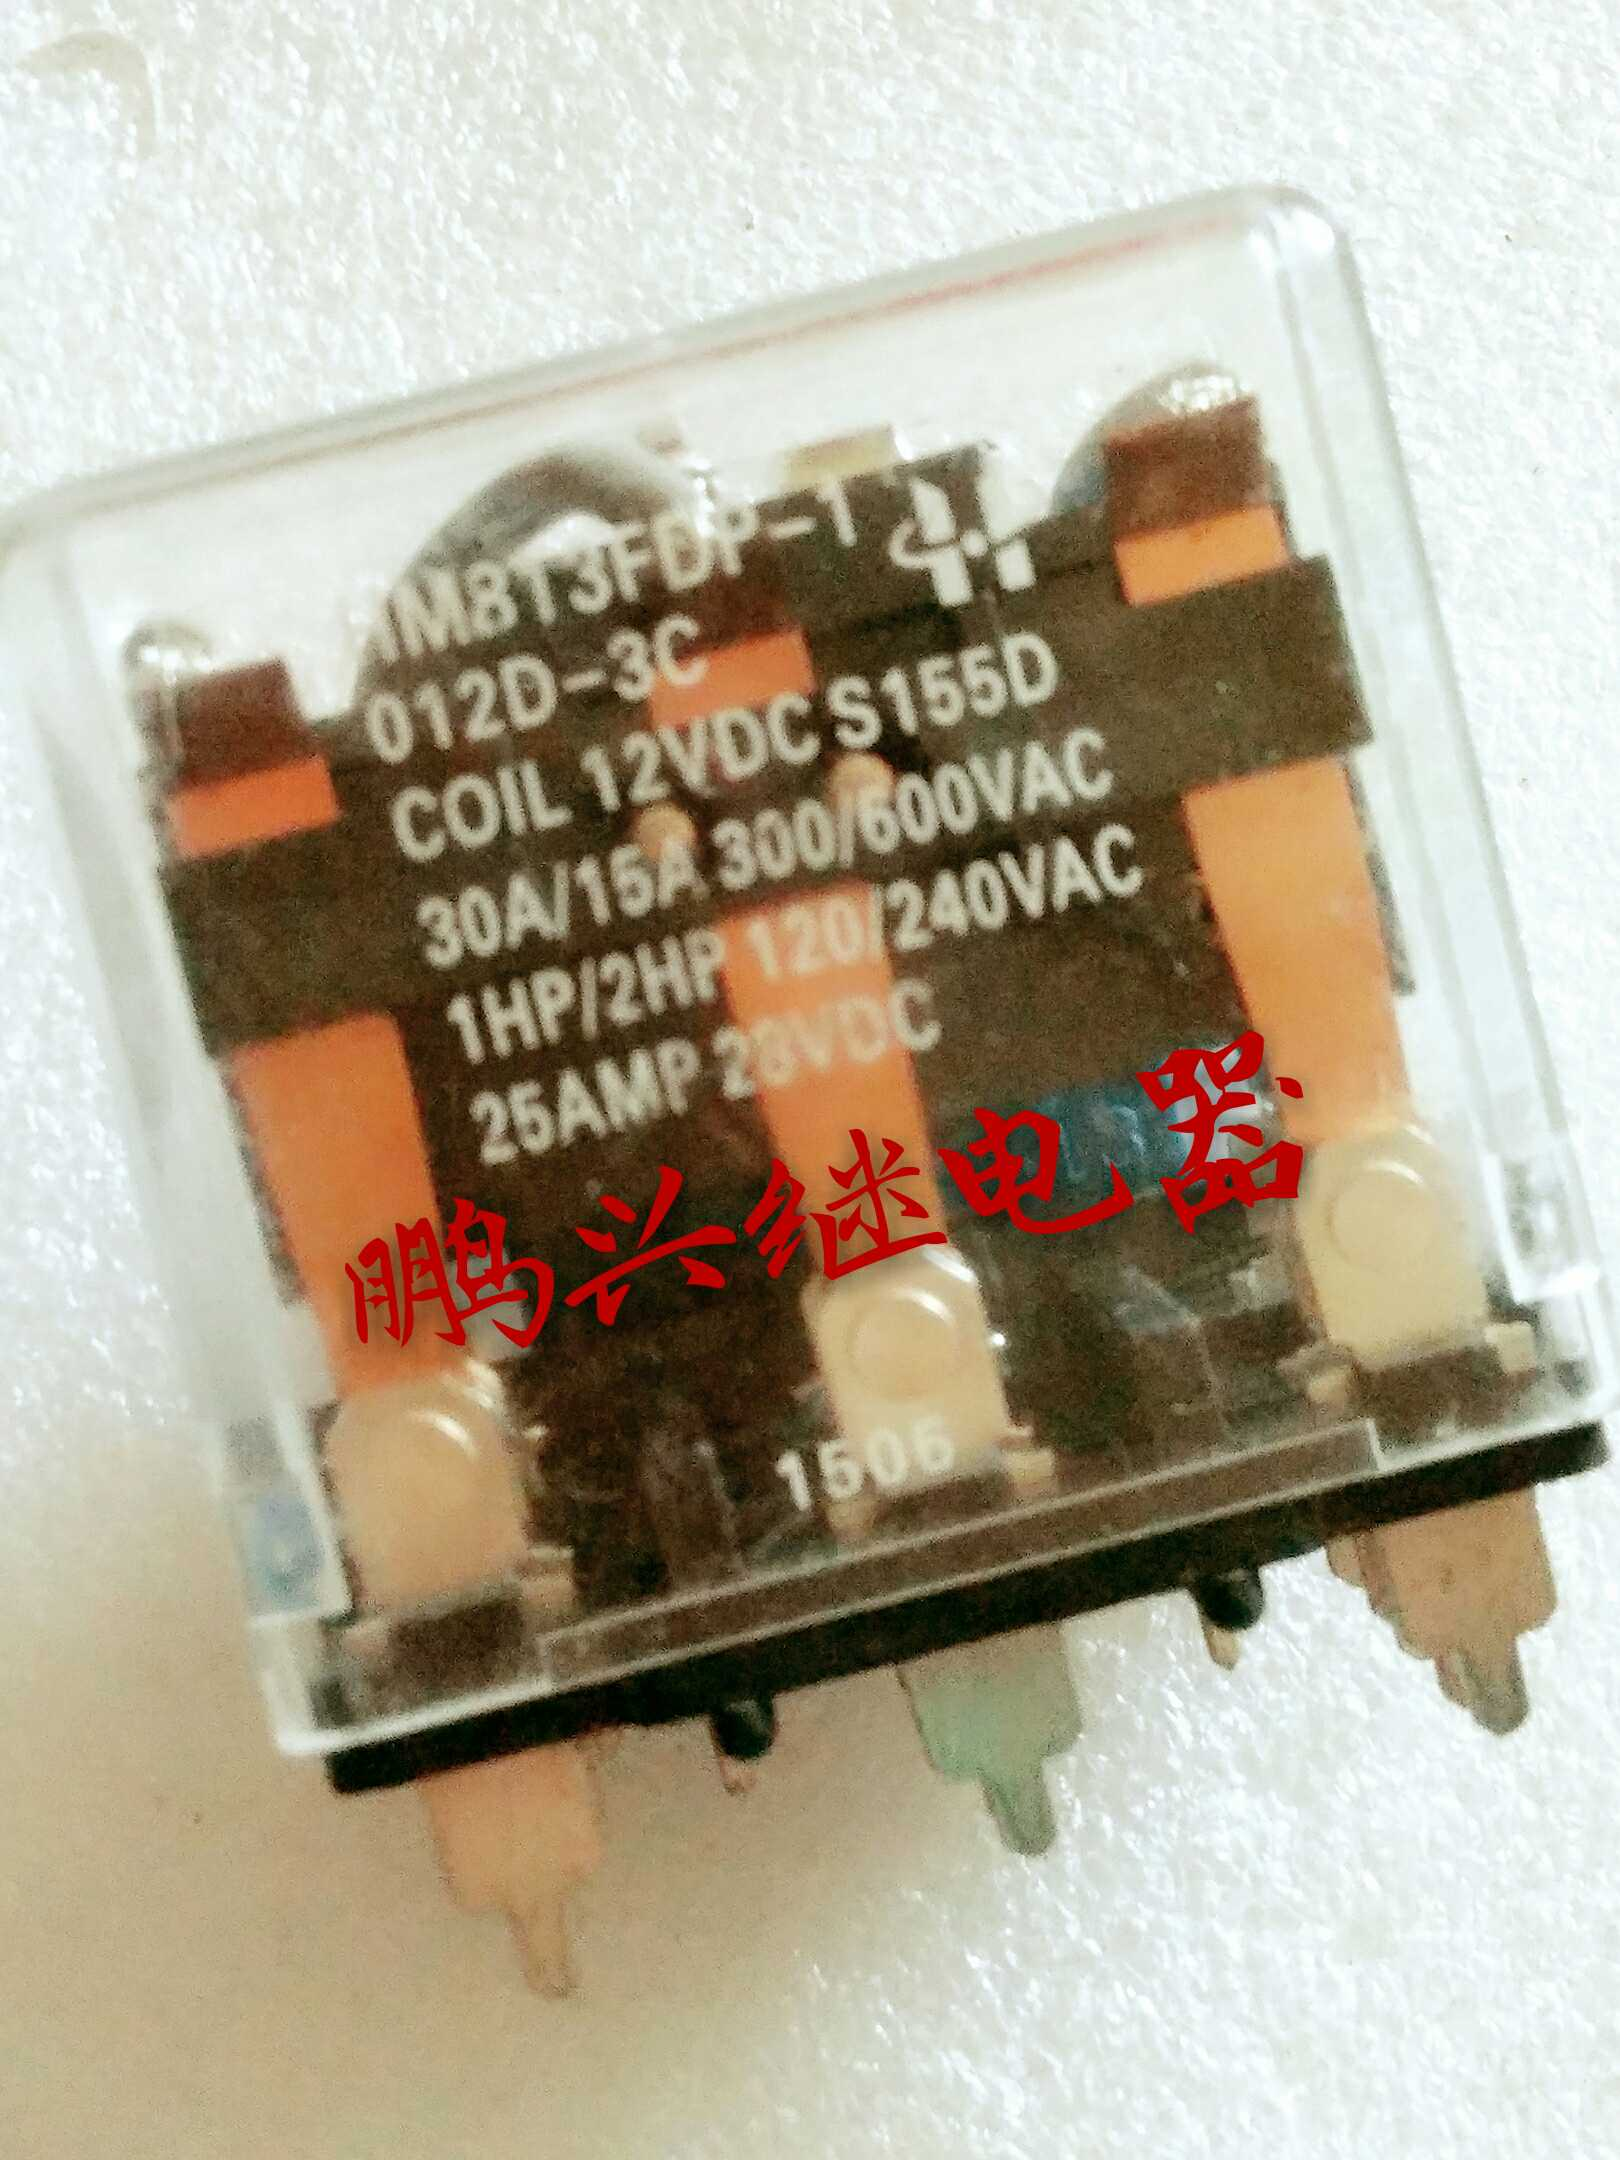 Free Shipping 10PCS/LOT HM813FDP-1 012D-3C Electric Relay 12VDC S 155D